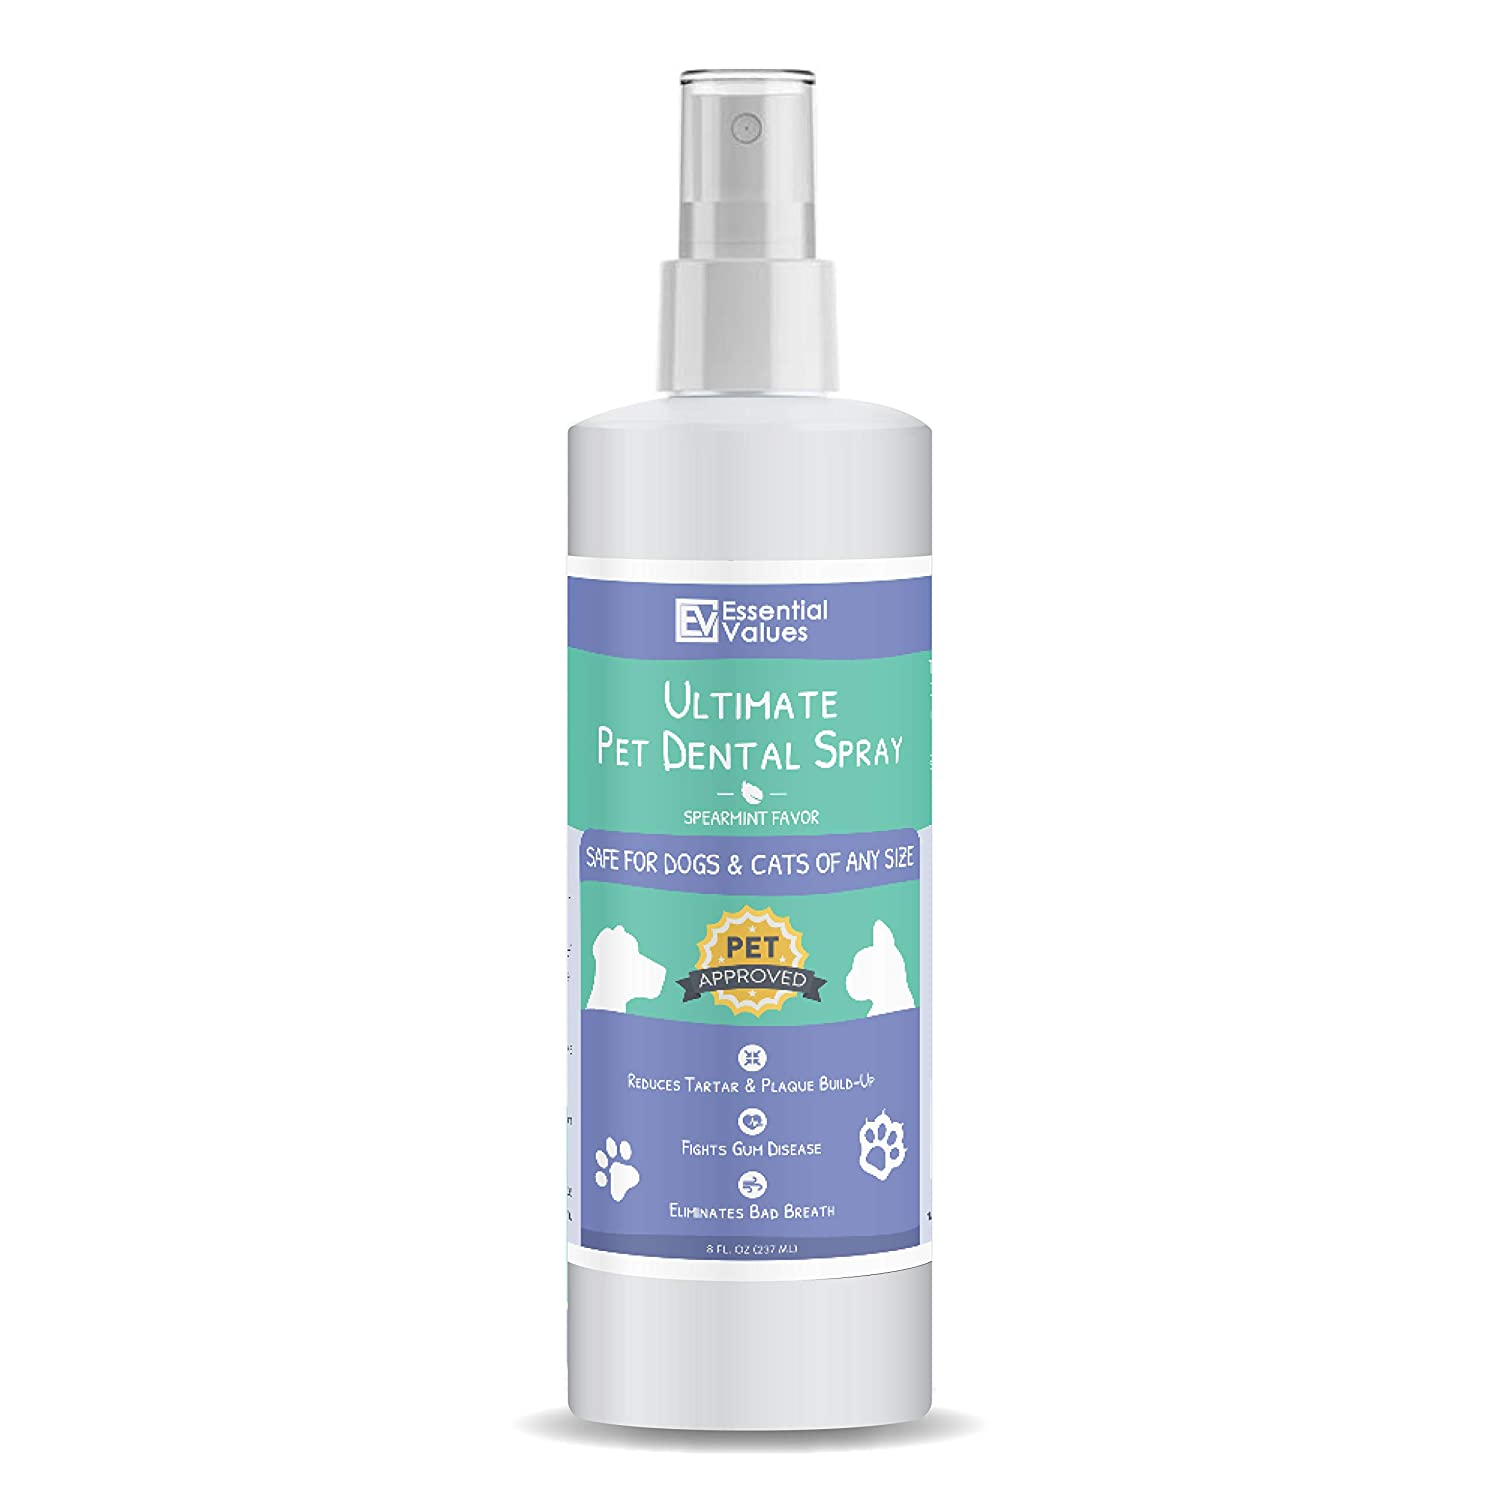 Essential Values 8 OZ Pet Dental Spray & Water Additive for Dogs and Cats – Natural & Safe Dental Care, Excellent for Bad Pet Breath | Fight Tartar, Plaque & Gum Disease – Made in USA